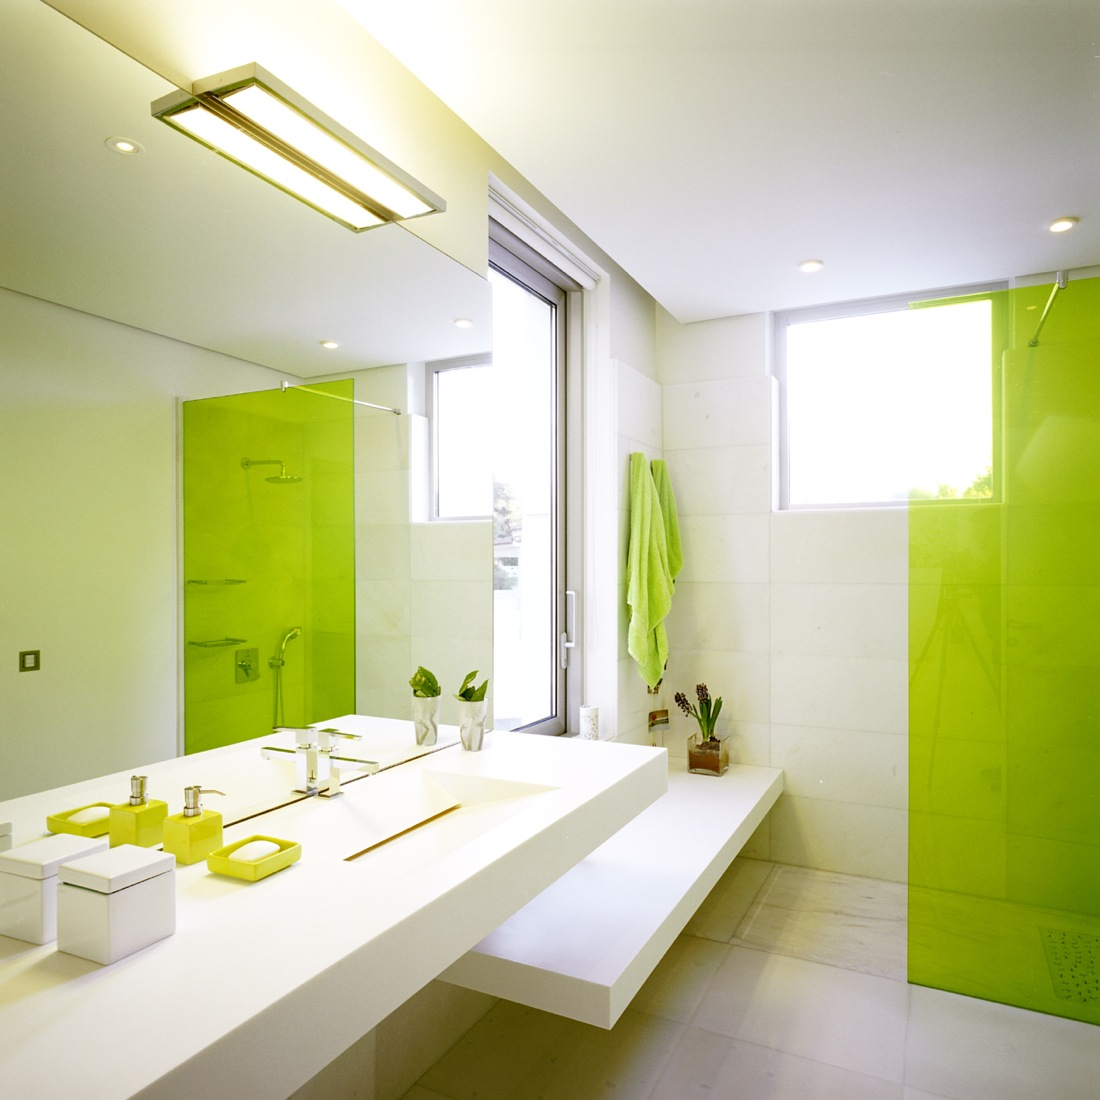 Minimalist bathroom designs home designs project for In design bathrooms